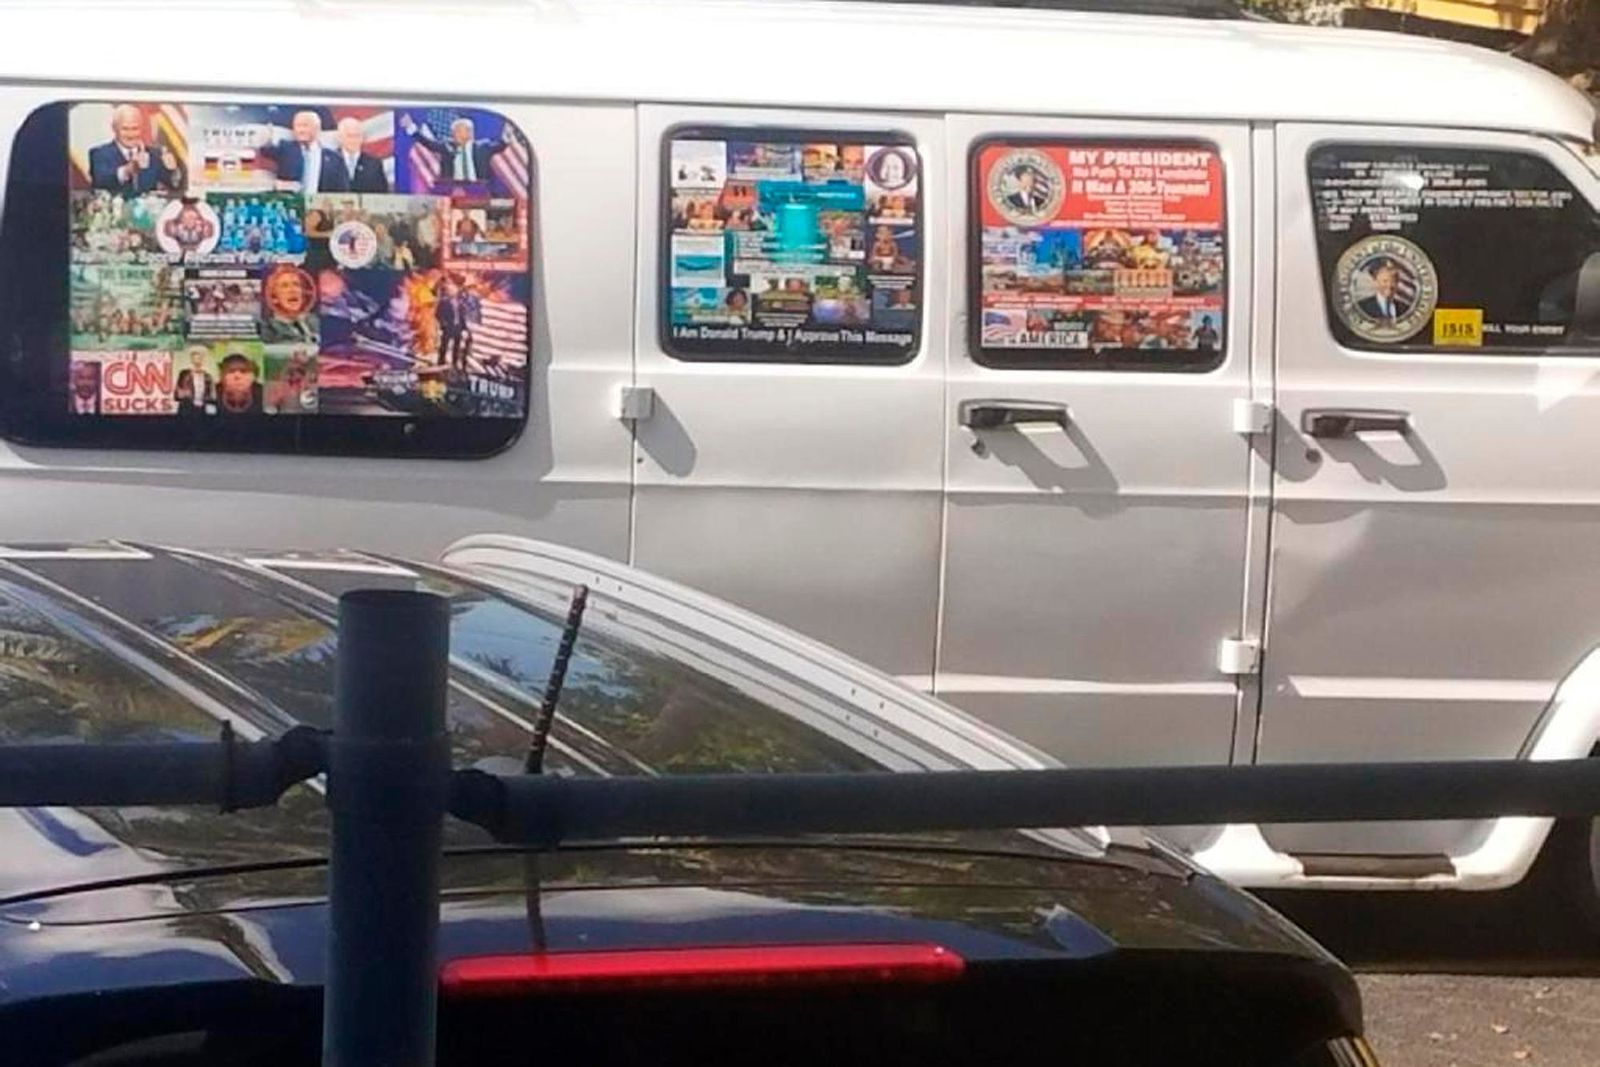 This Nov. 1, 2017, photo shows a van with windows covered with an assortment of stickers in Florida.{ } (Courtesy of Lesley Abravanel via AP)